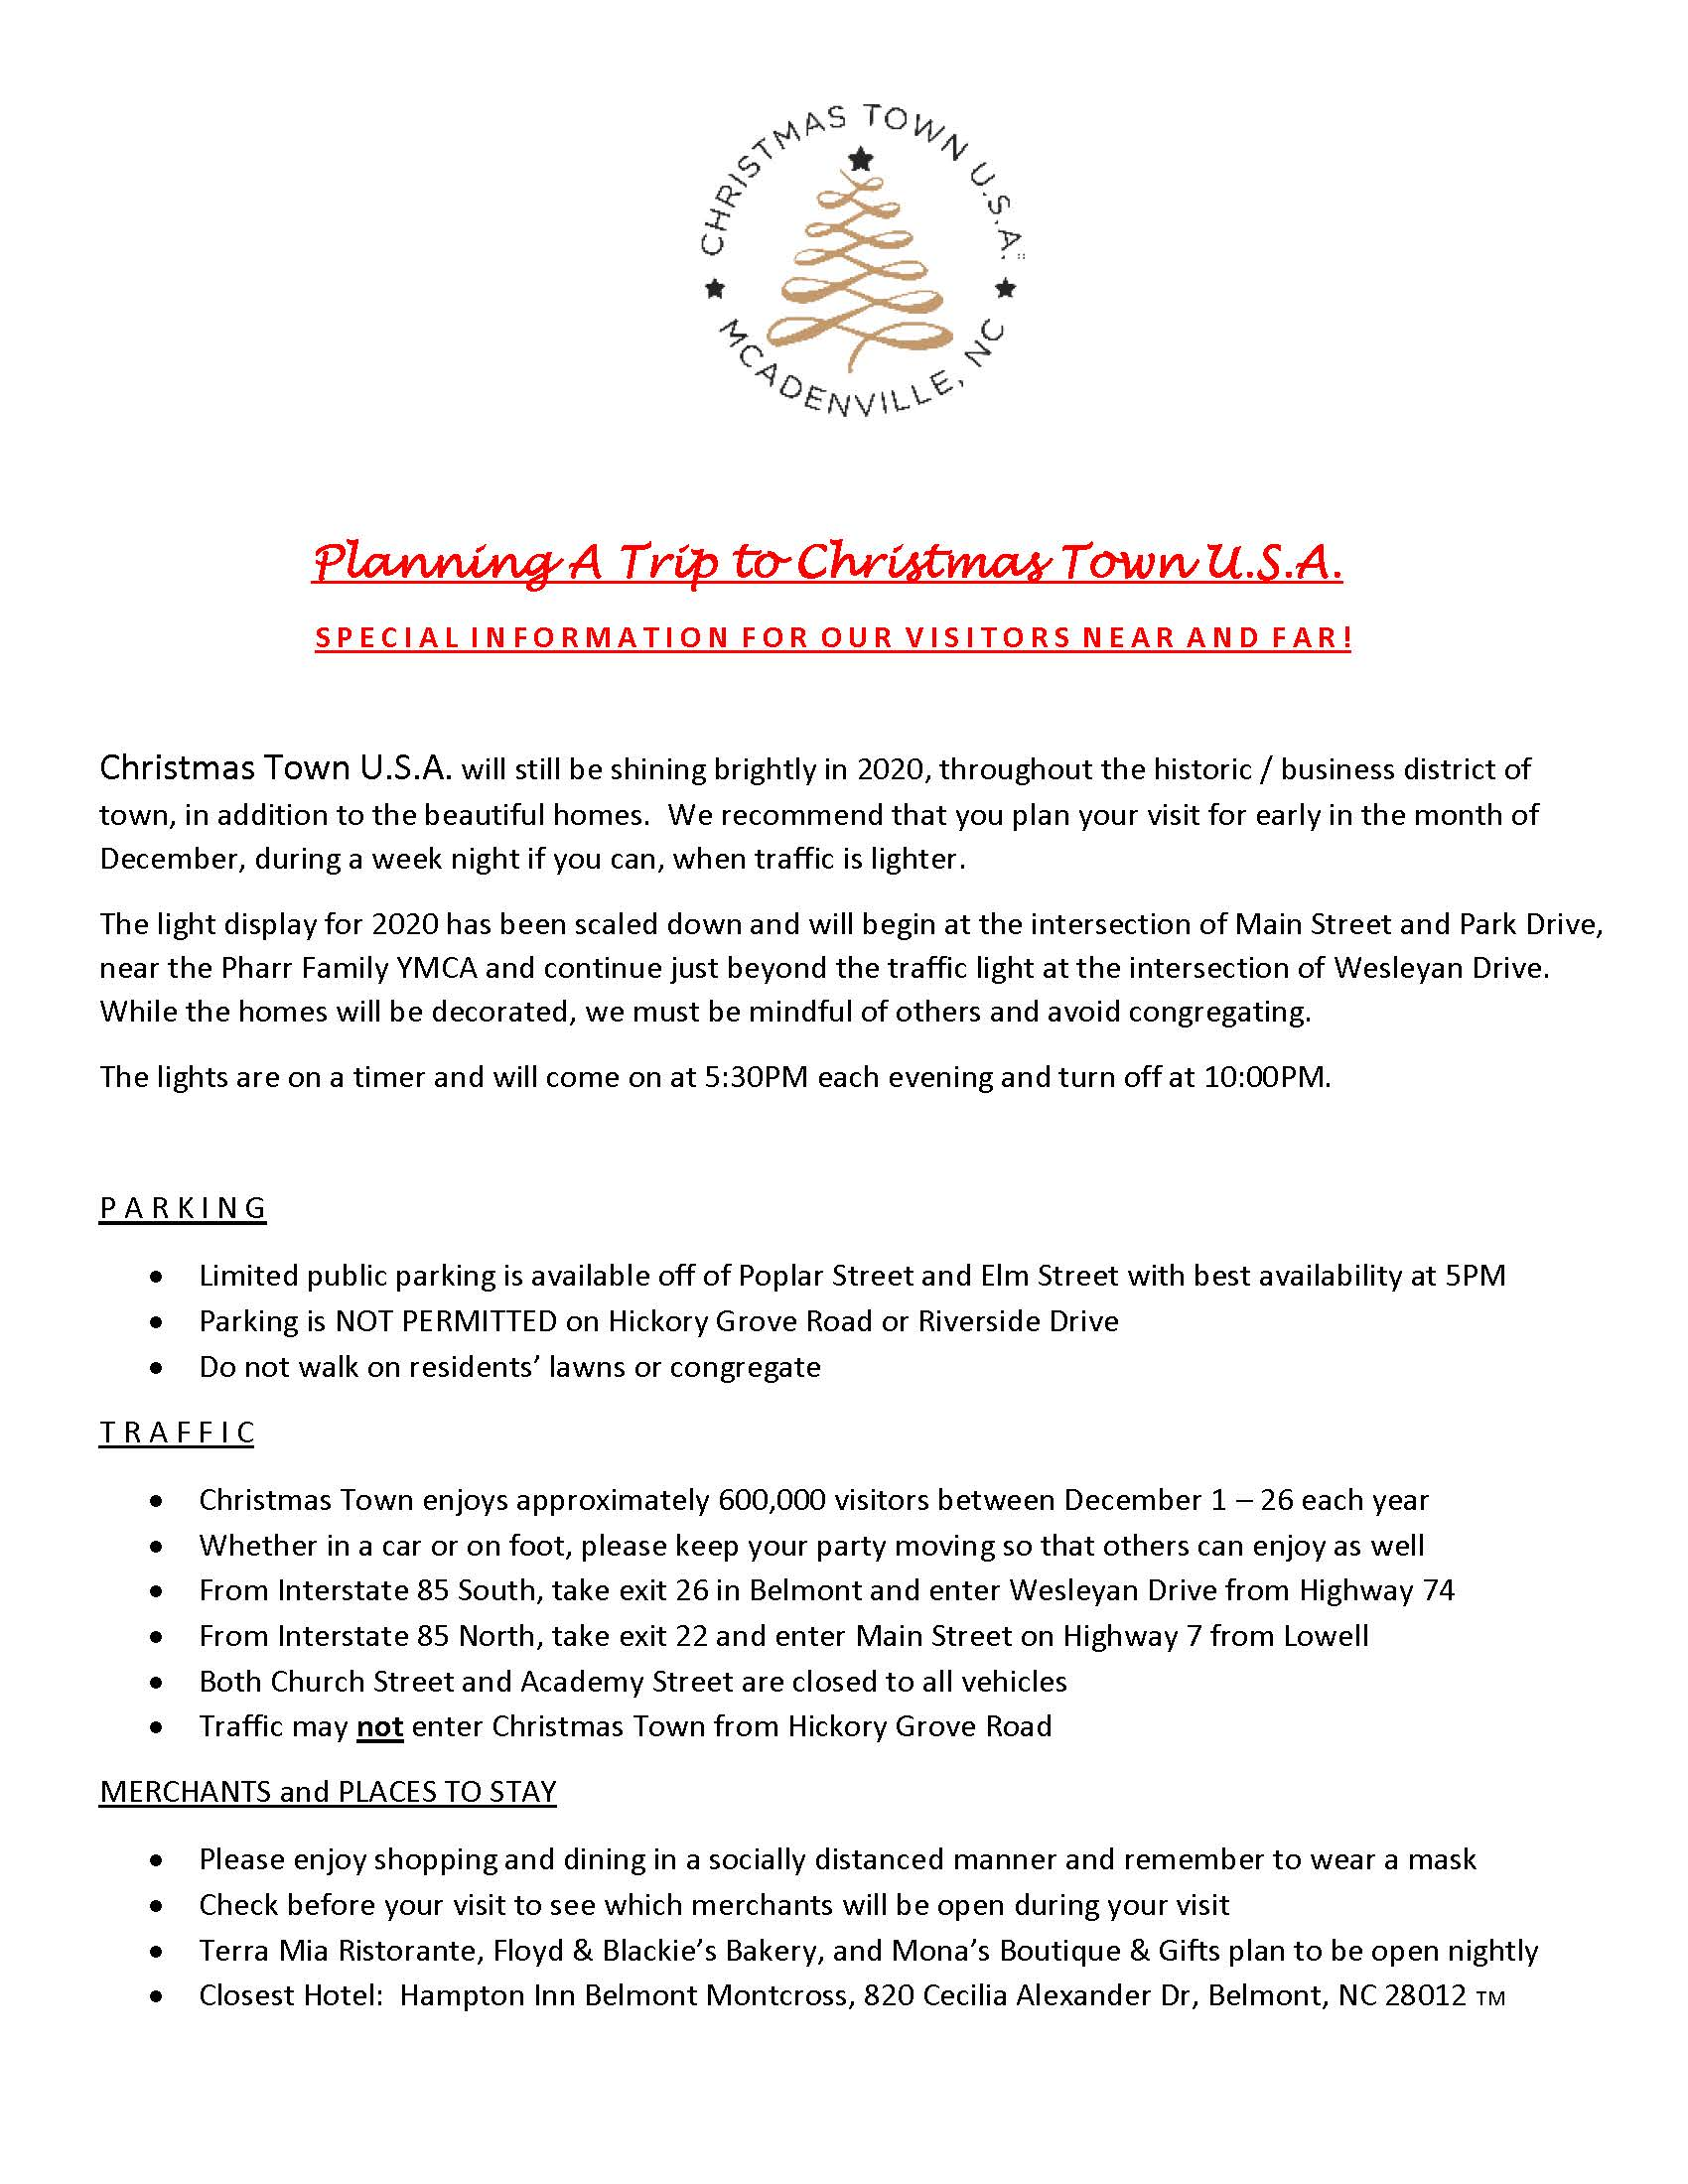 Website Info_Planning A Trip to Christmas Town 2020   Charlotte